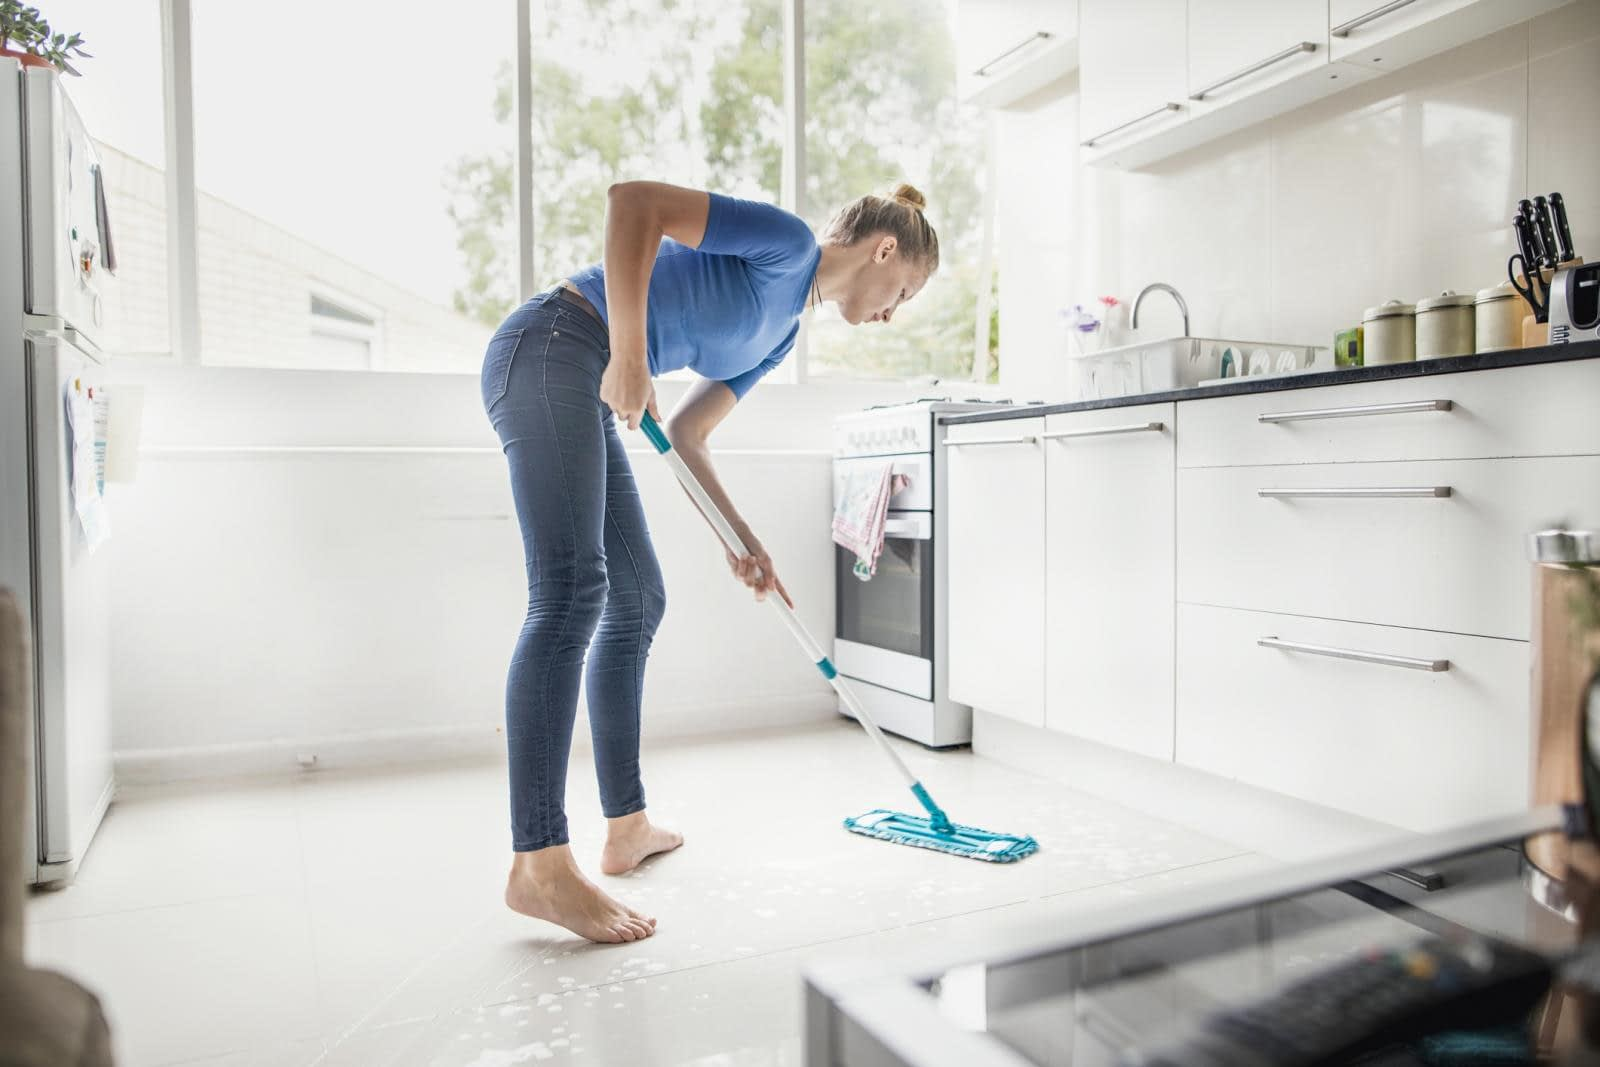 Mopping Floor With The Help Of Vinegar And Water Solution: